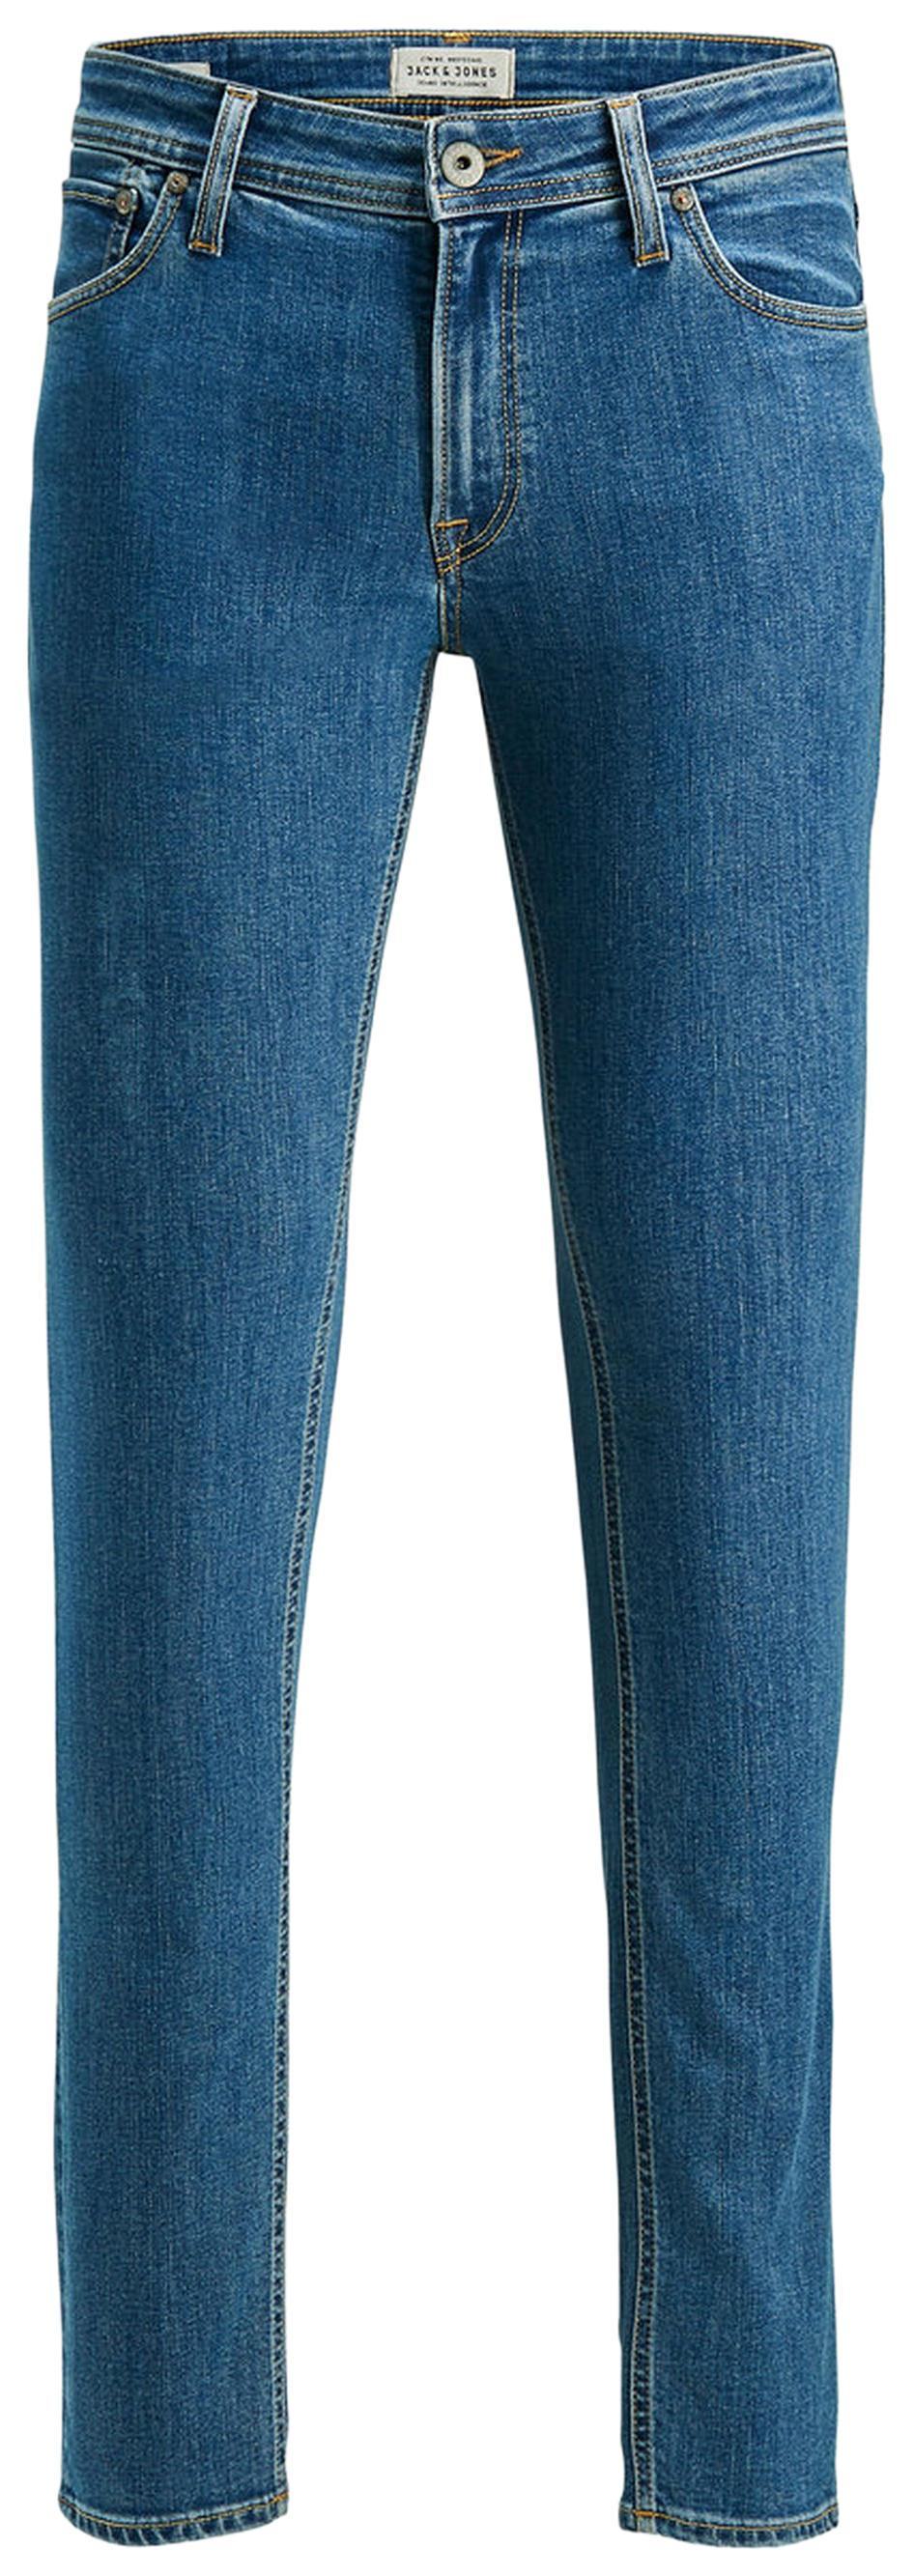 Jack & Jones Liam 694 Skinny Fit Denim Jeans Blue